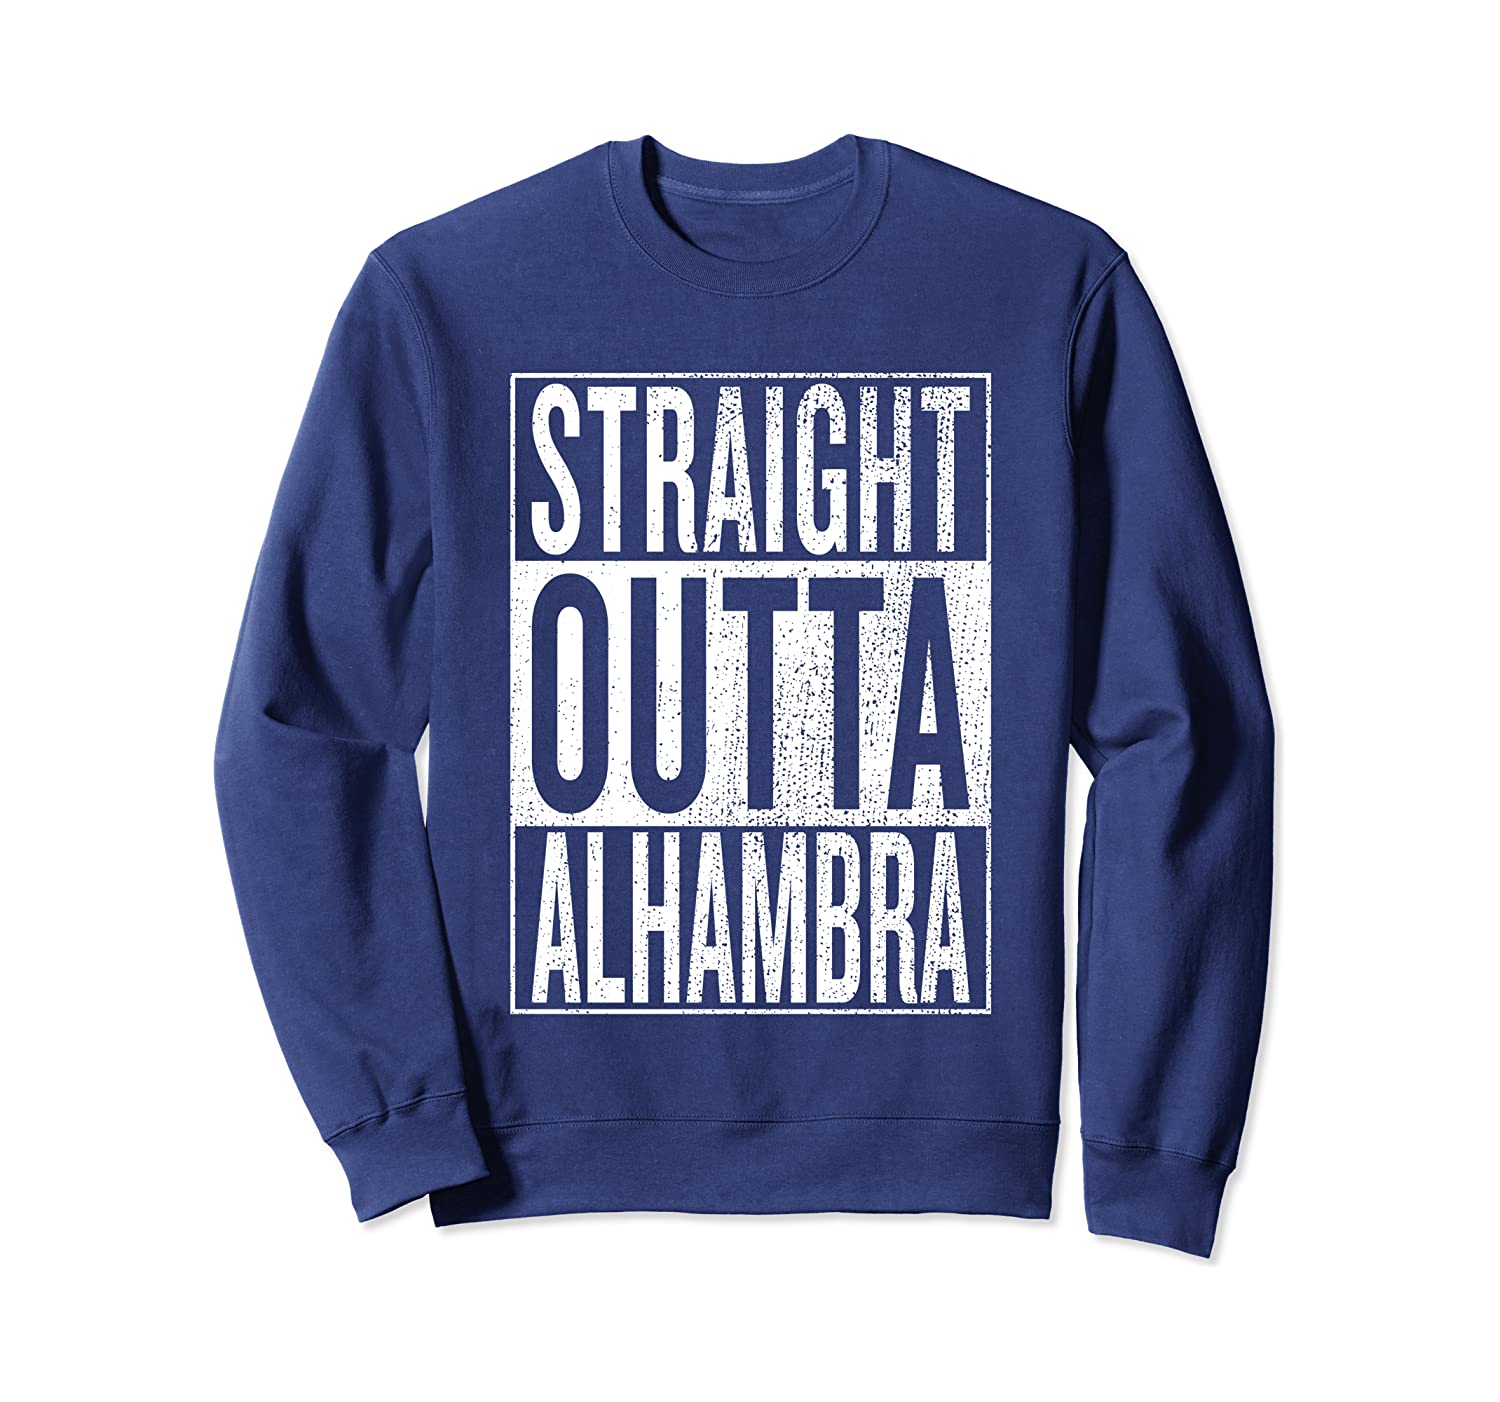 Straight Outta Alhambra Great Travel Outfit & Gift Idea Sweatshirt